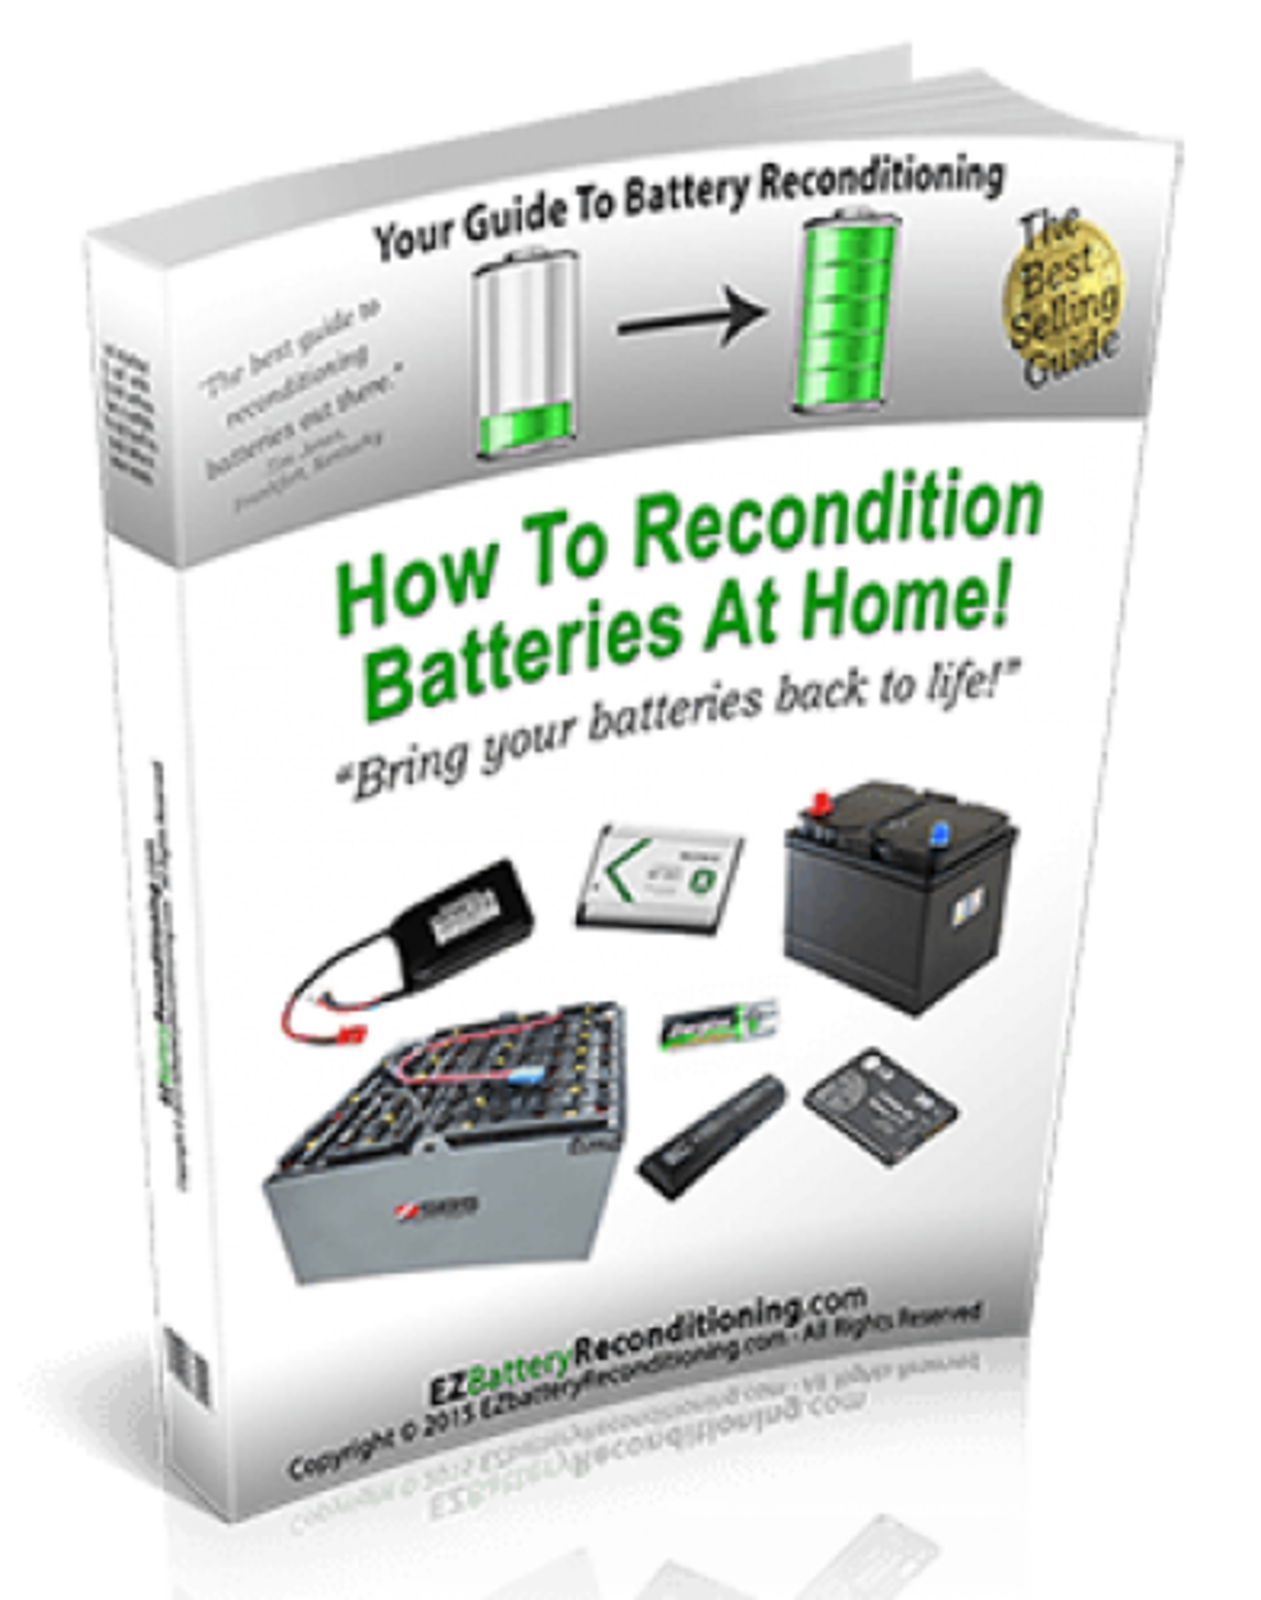 EZ Battery Reconditioning Book Reviews: Will Get PDF Free Download? MJ Customer Reviews